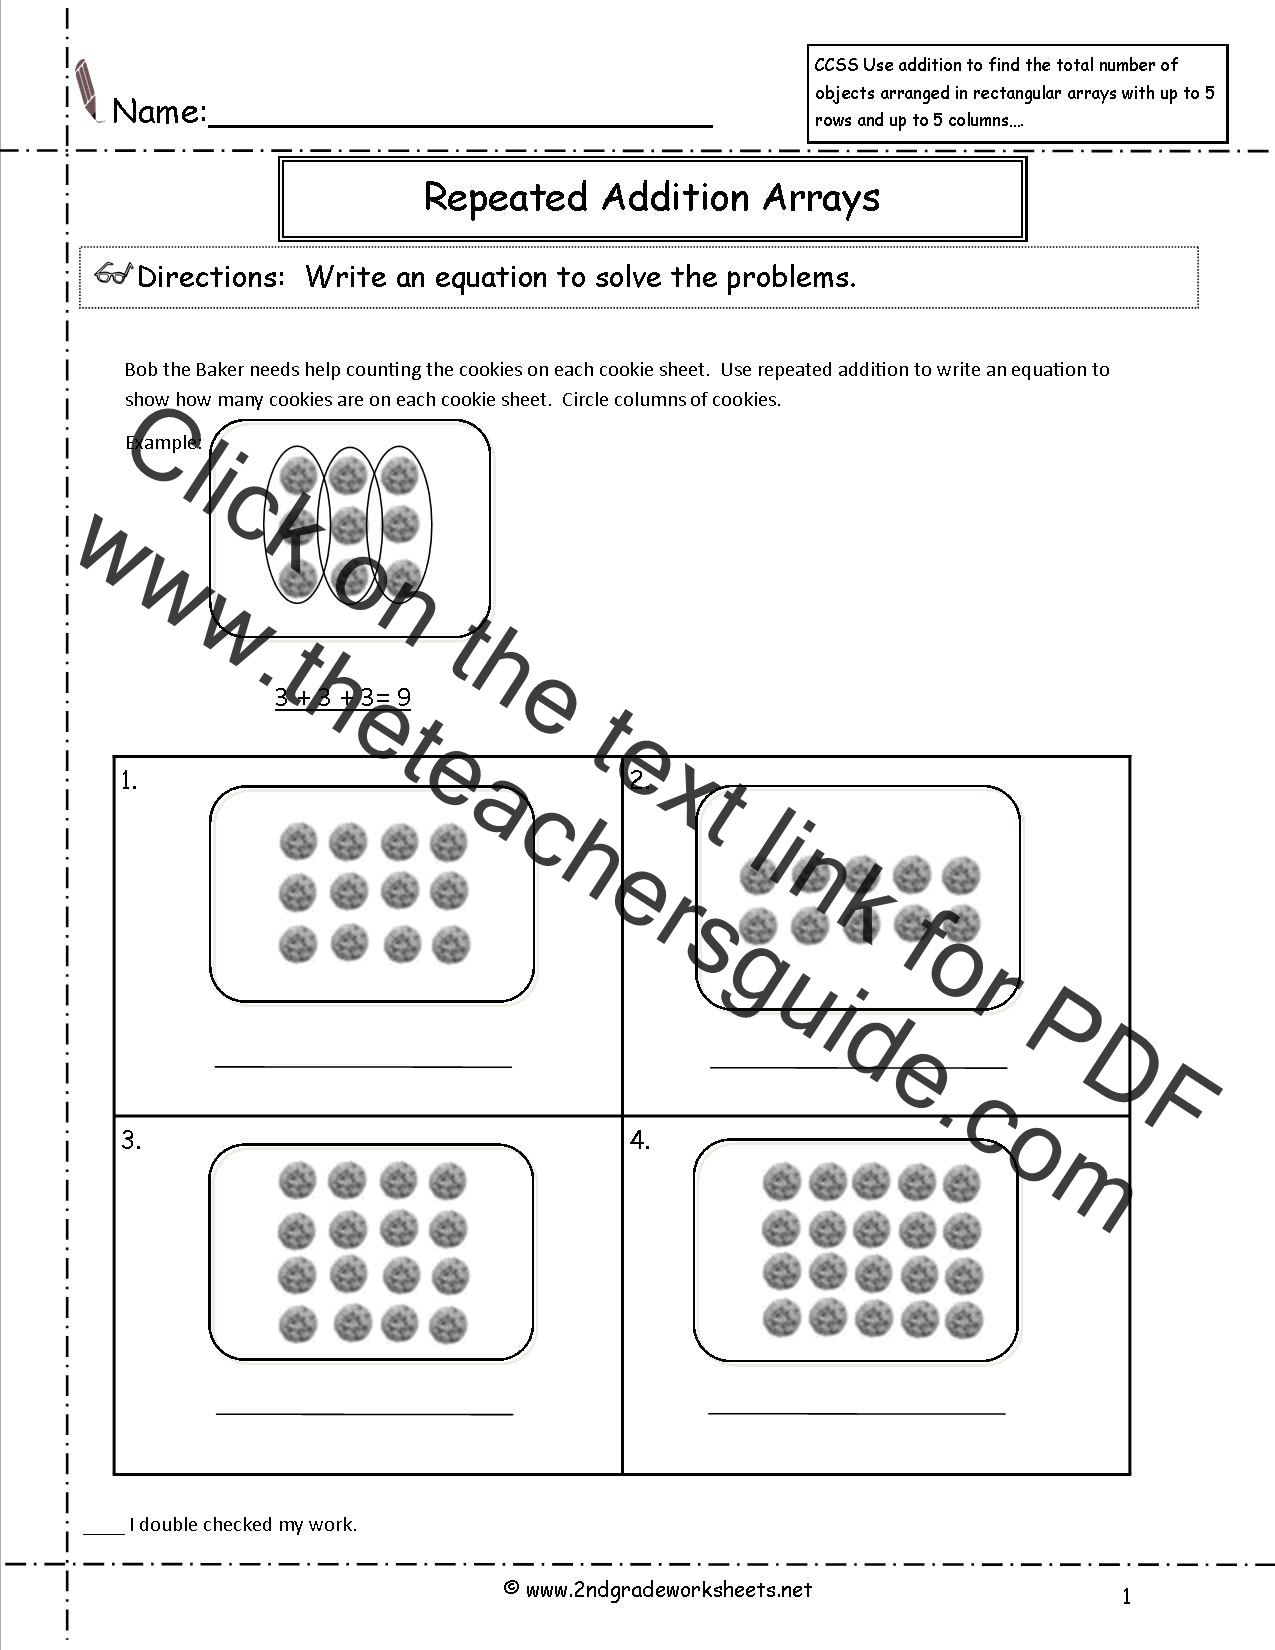 CCSS 2OA4 Worksheets – Free Addition Worksheets for 2nd Grade